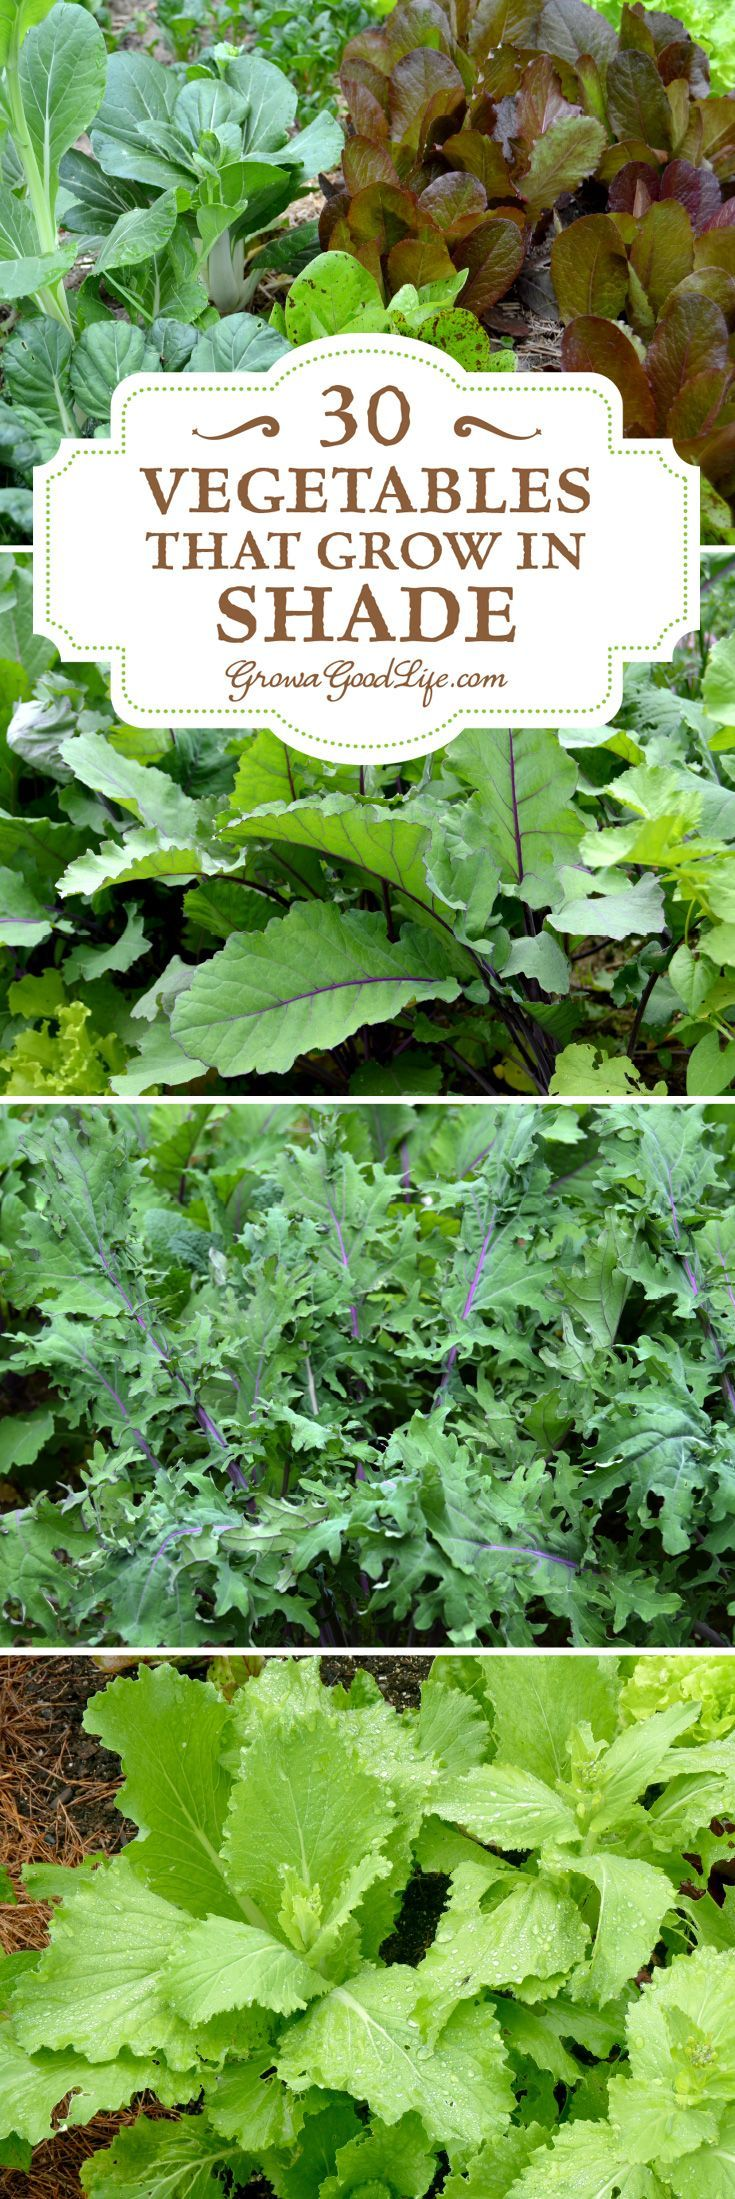 30+ Vegetables That Grow in Shade #veggiegardens